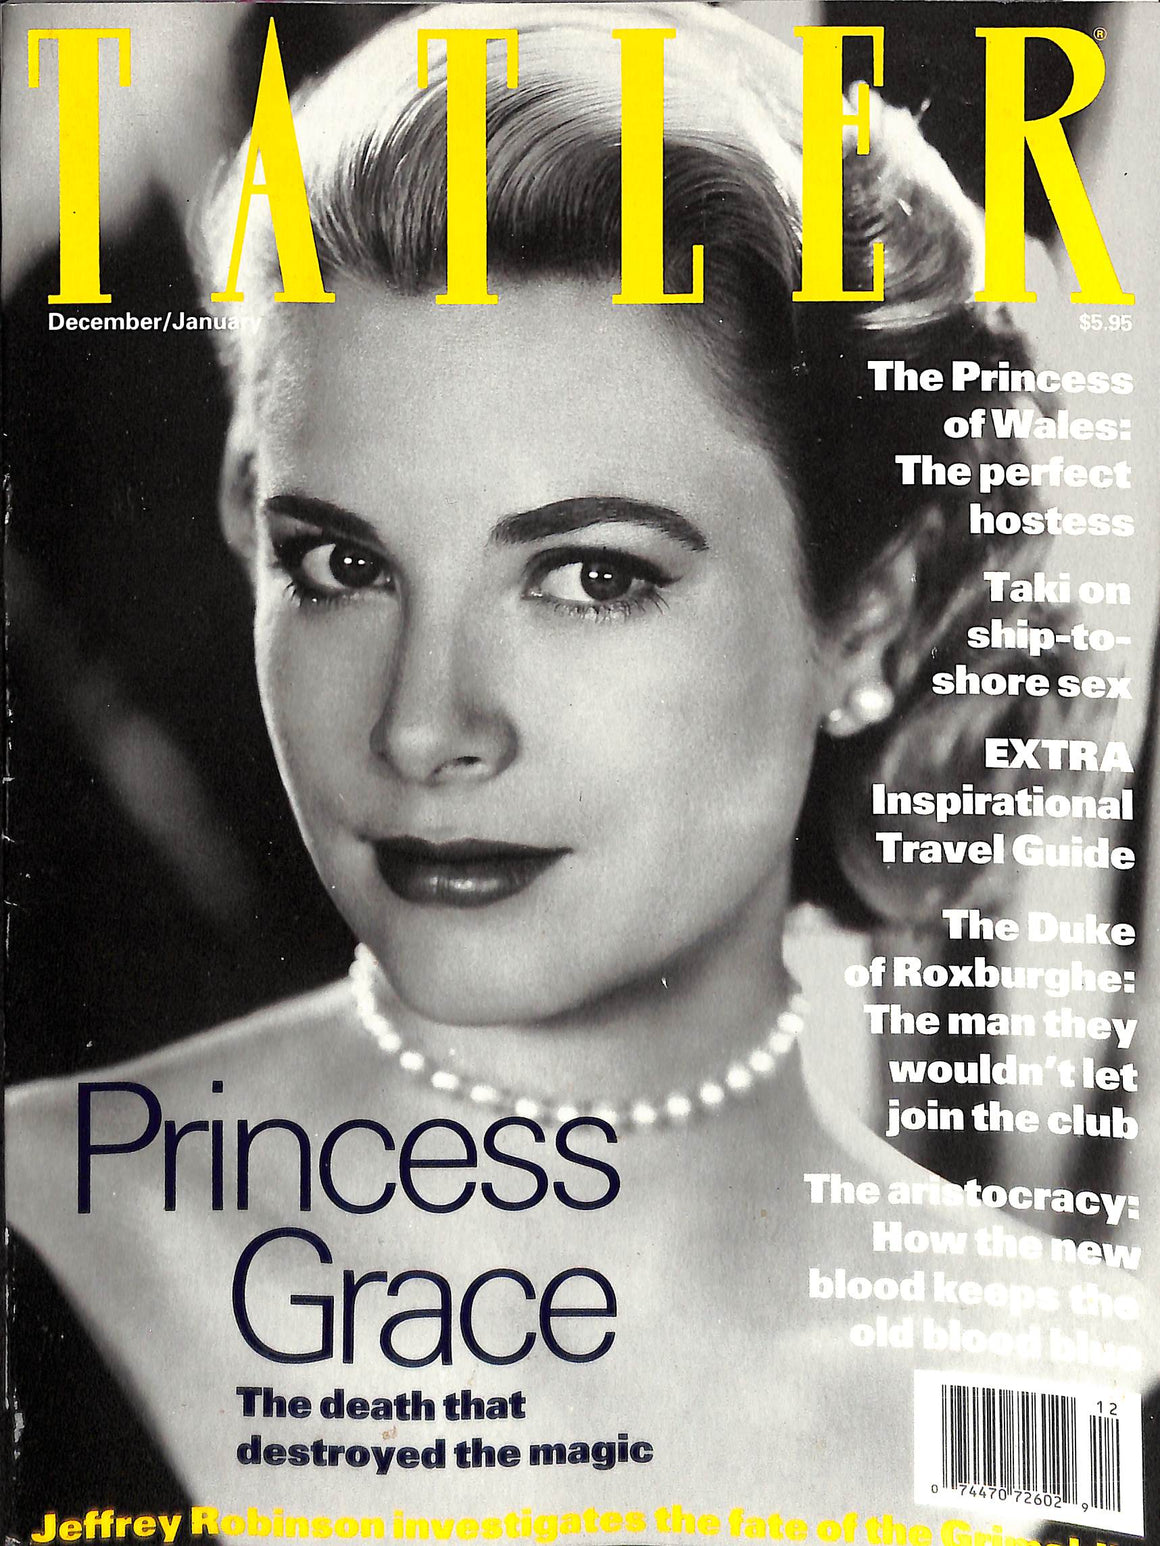 Tatler Volume 287 Number 1 December 1991/January 1992